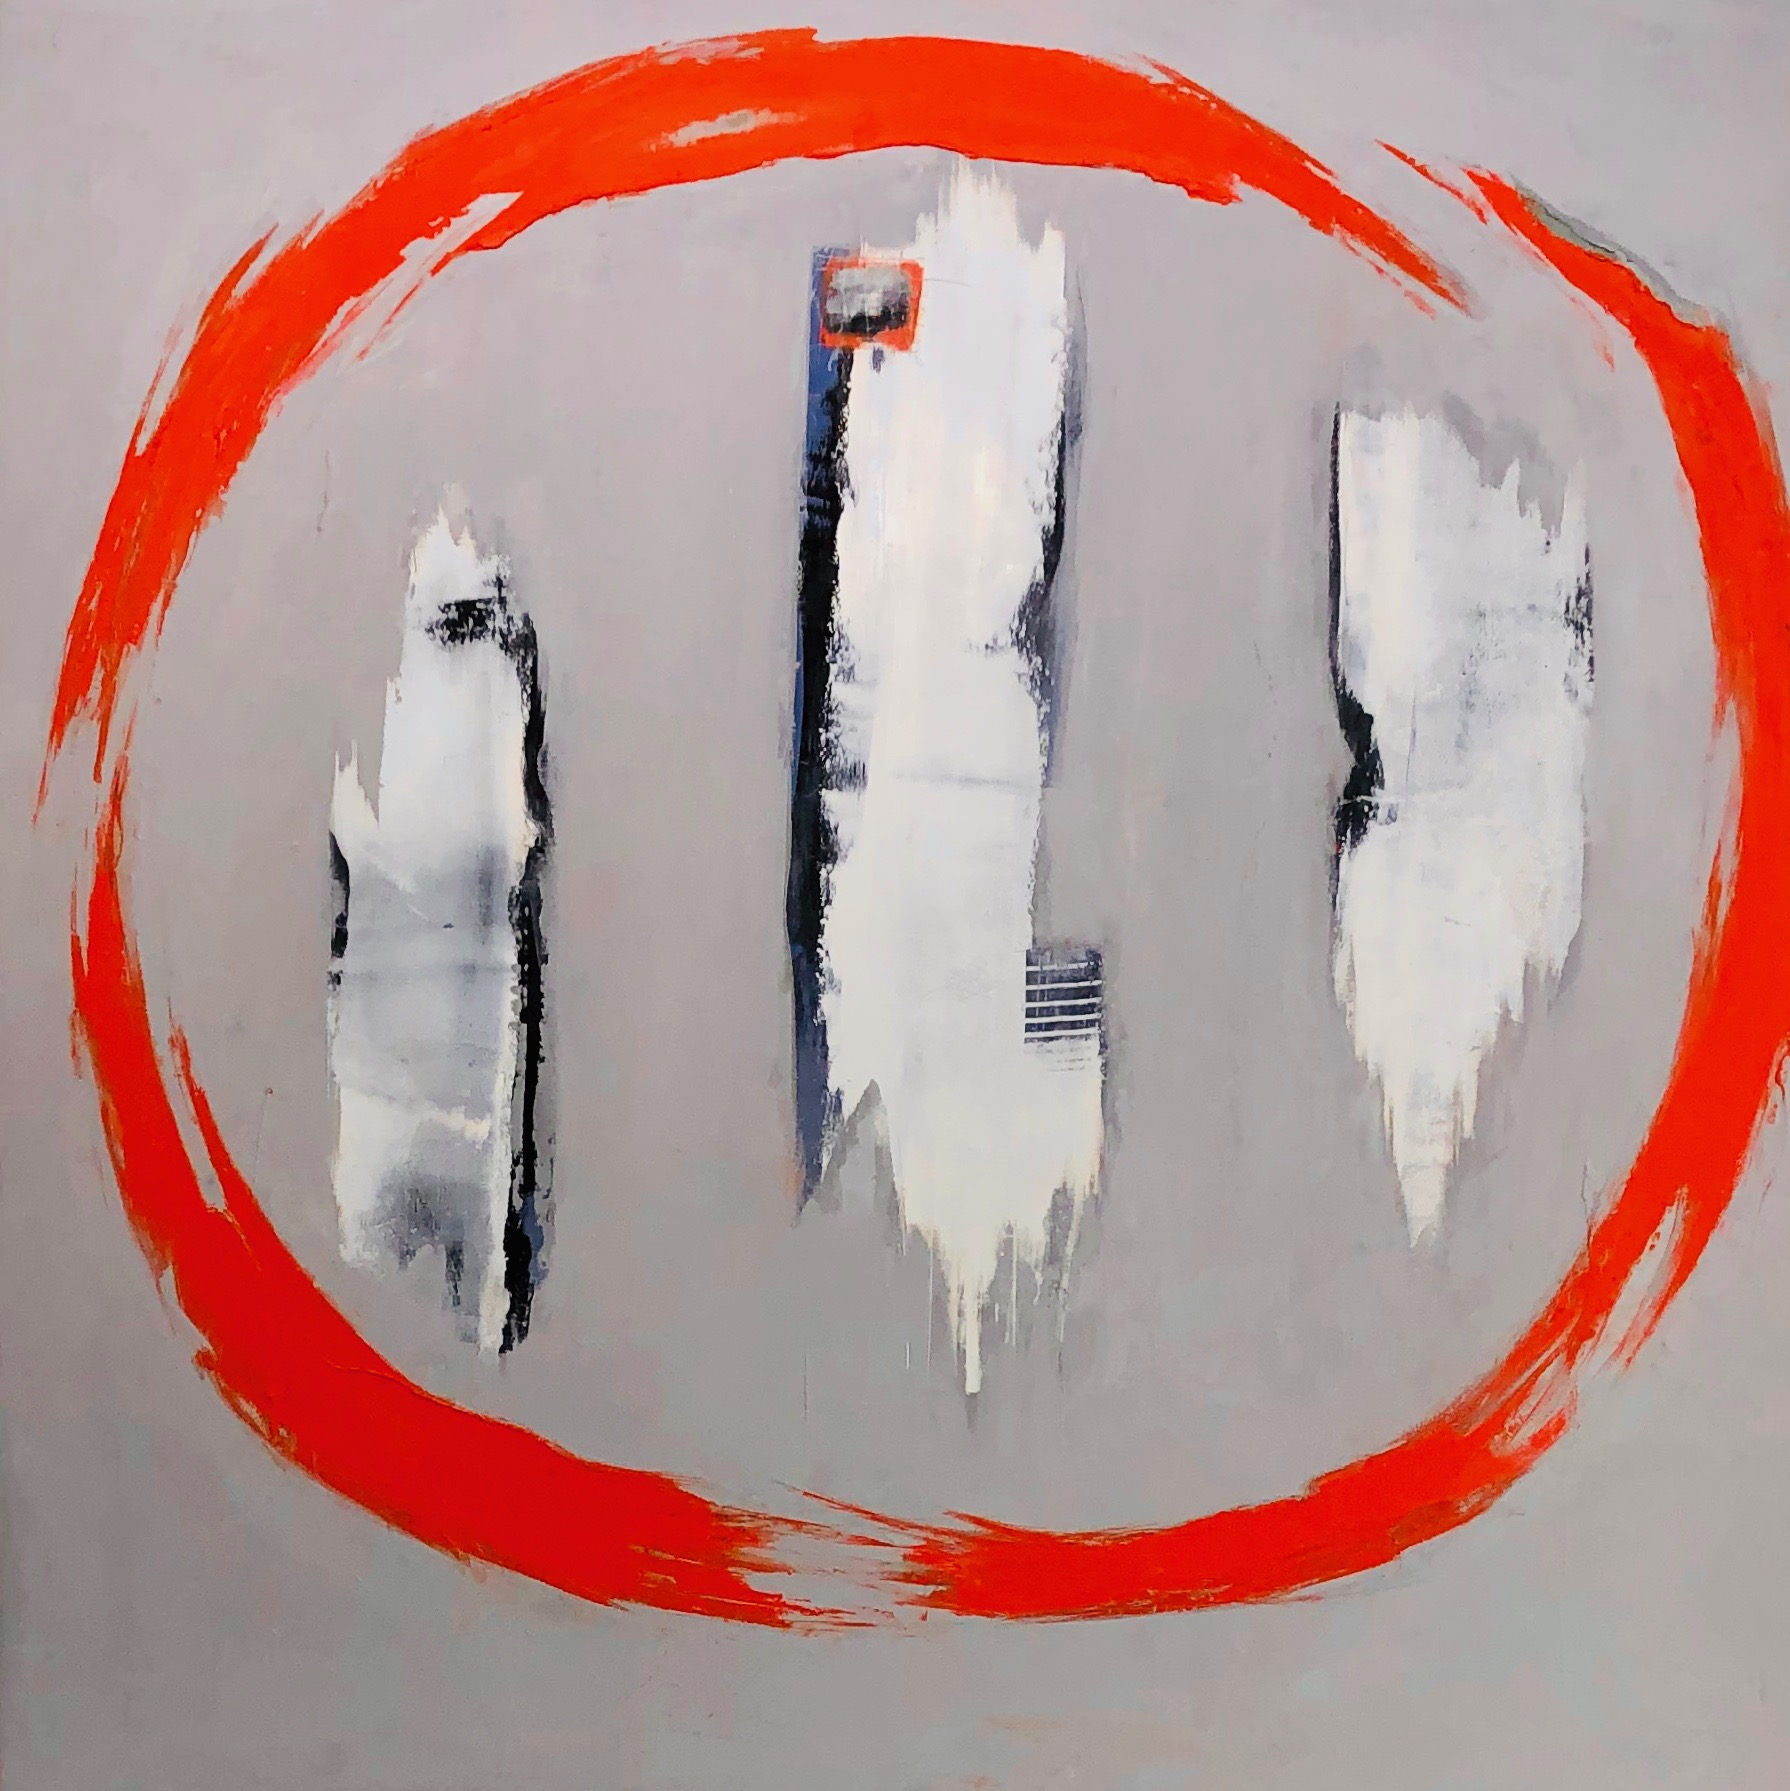 Fence Mending_Oil and Cod Wax on Panel_48x48 inches.jpg